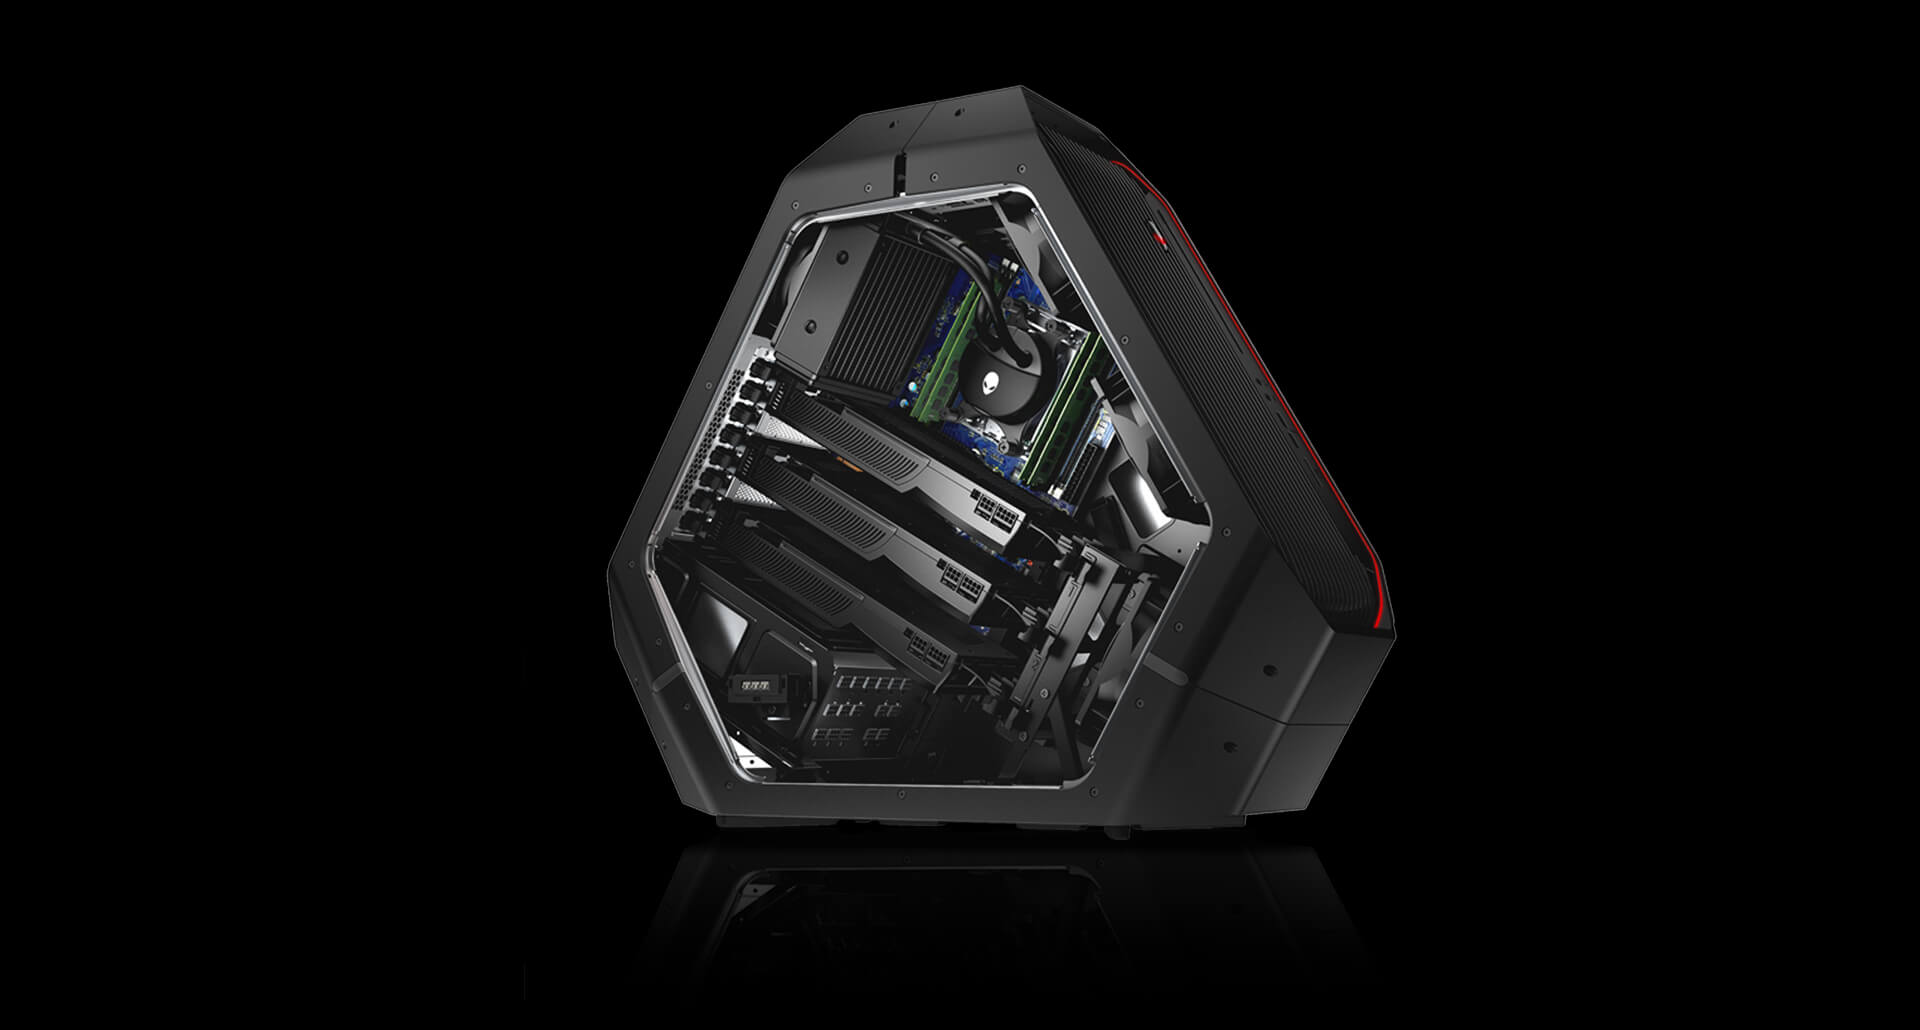 Alienware Announces New Area 51 Gaming PC Featuring AMD